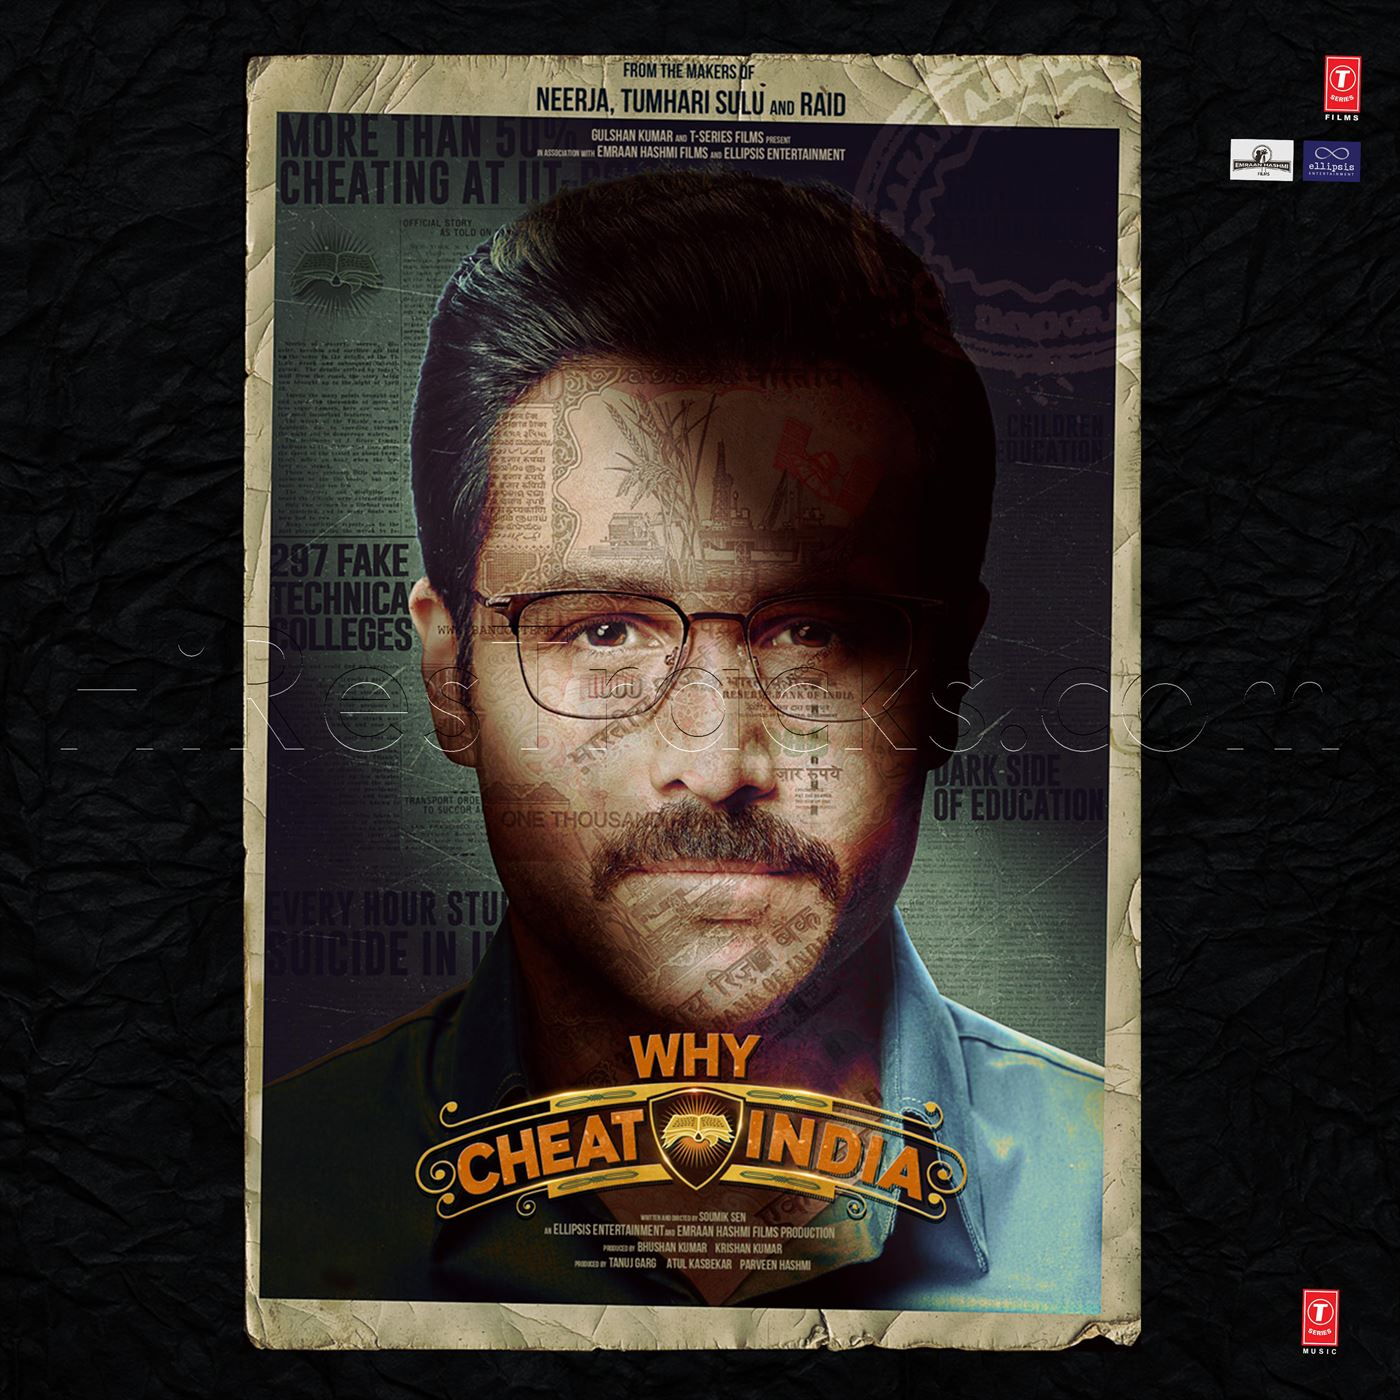 Why Cheat India (2019) [ACD-RIP-WAV]